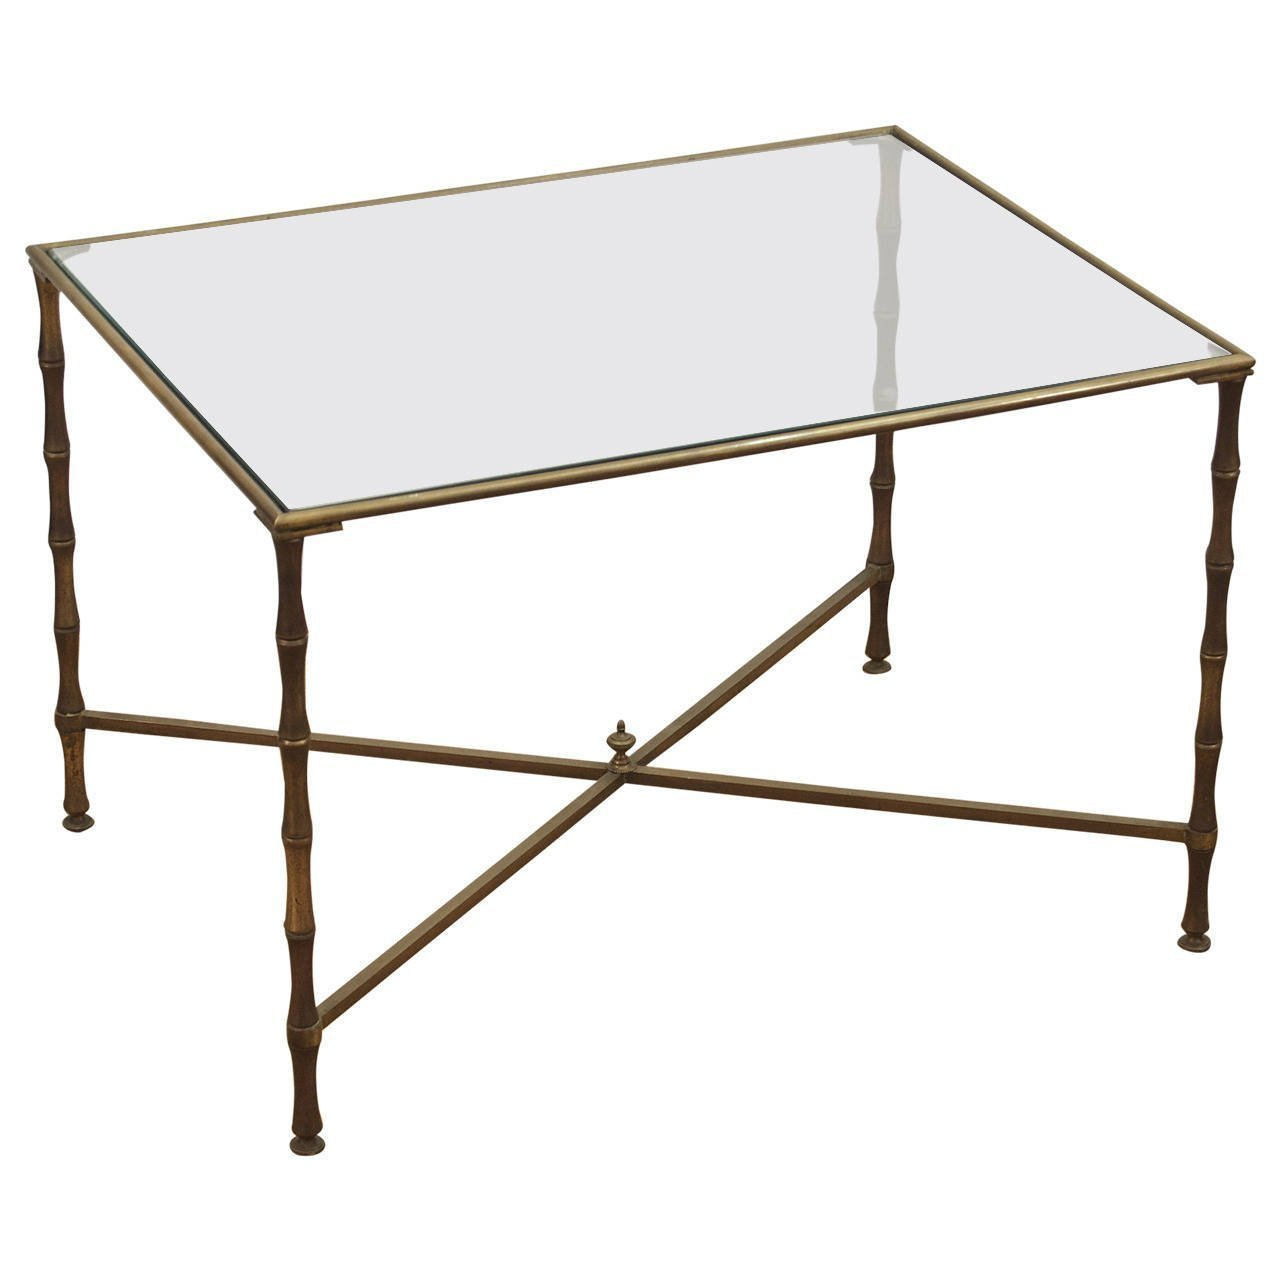 Brass Faux Bamboo Coffee Table: Brass Faux Bamboo Coffee Table